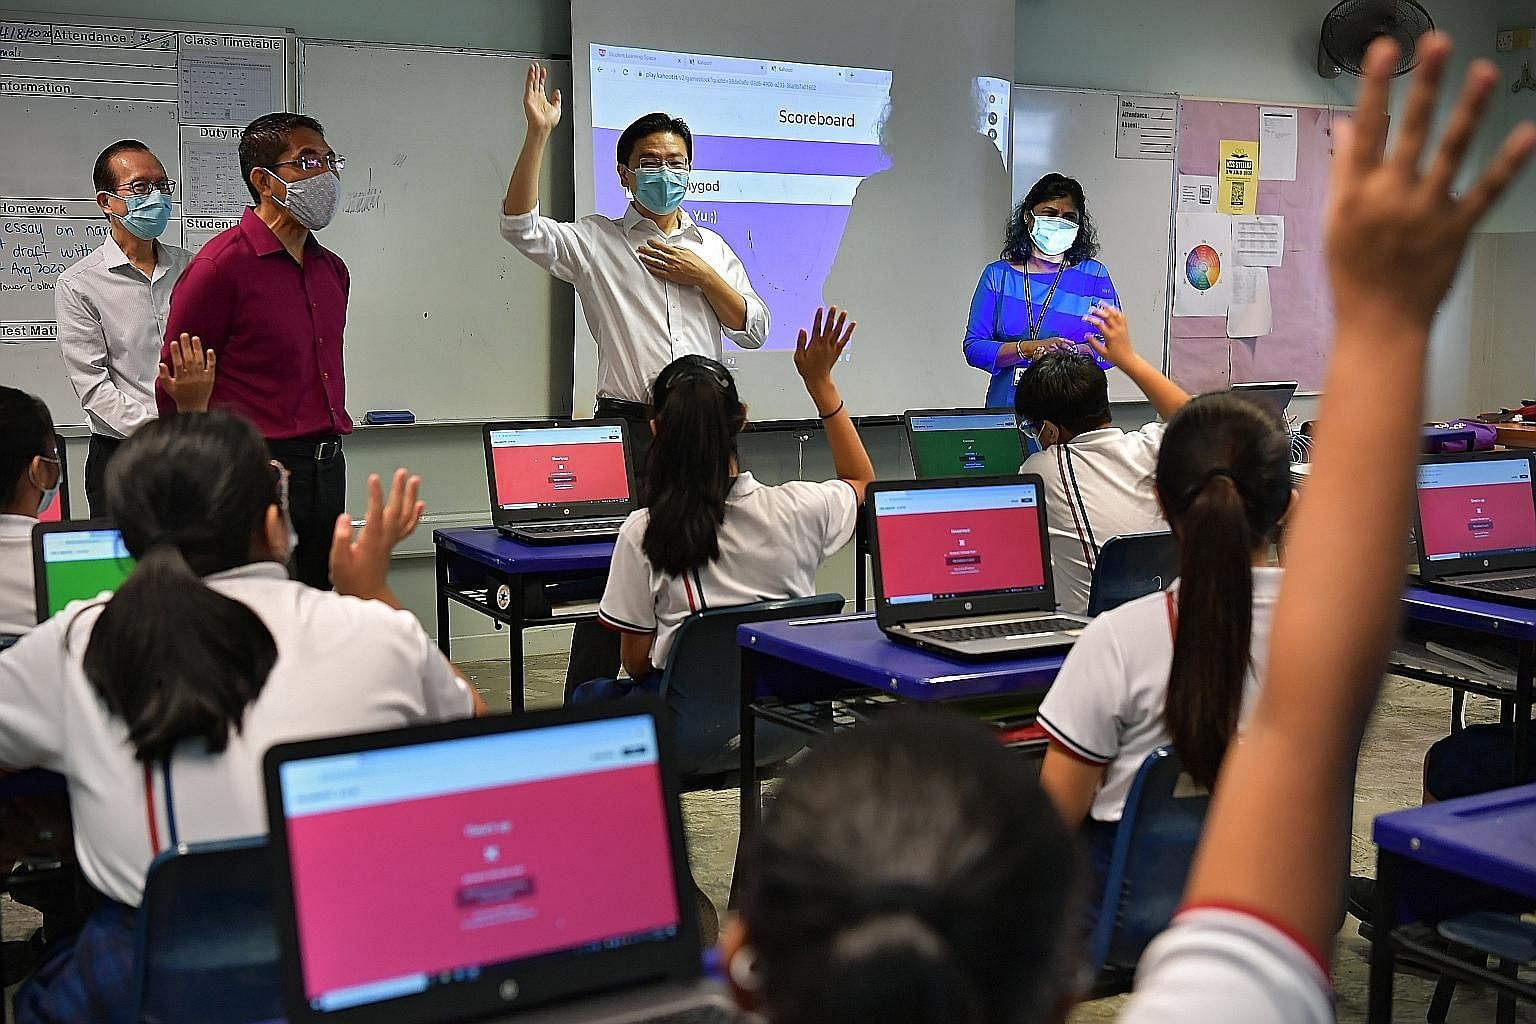 """Education Minister Lawrence Wong (centre) and Second Minister for Education Maliki Osman (second from left) at Marsiling Secondary School yesterday. Mr Wong said making education a social leveller will involve ensuring schools """"remain an uplifting fo"""